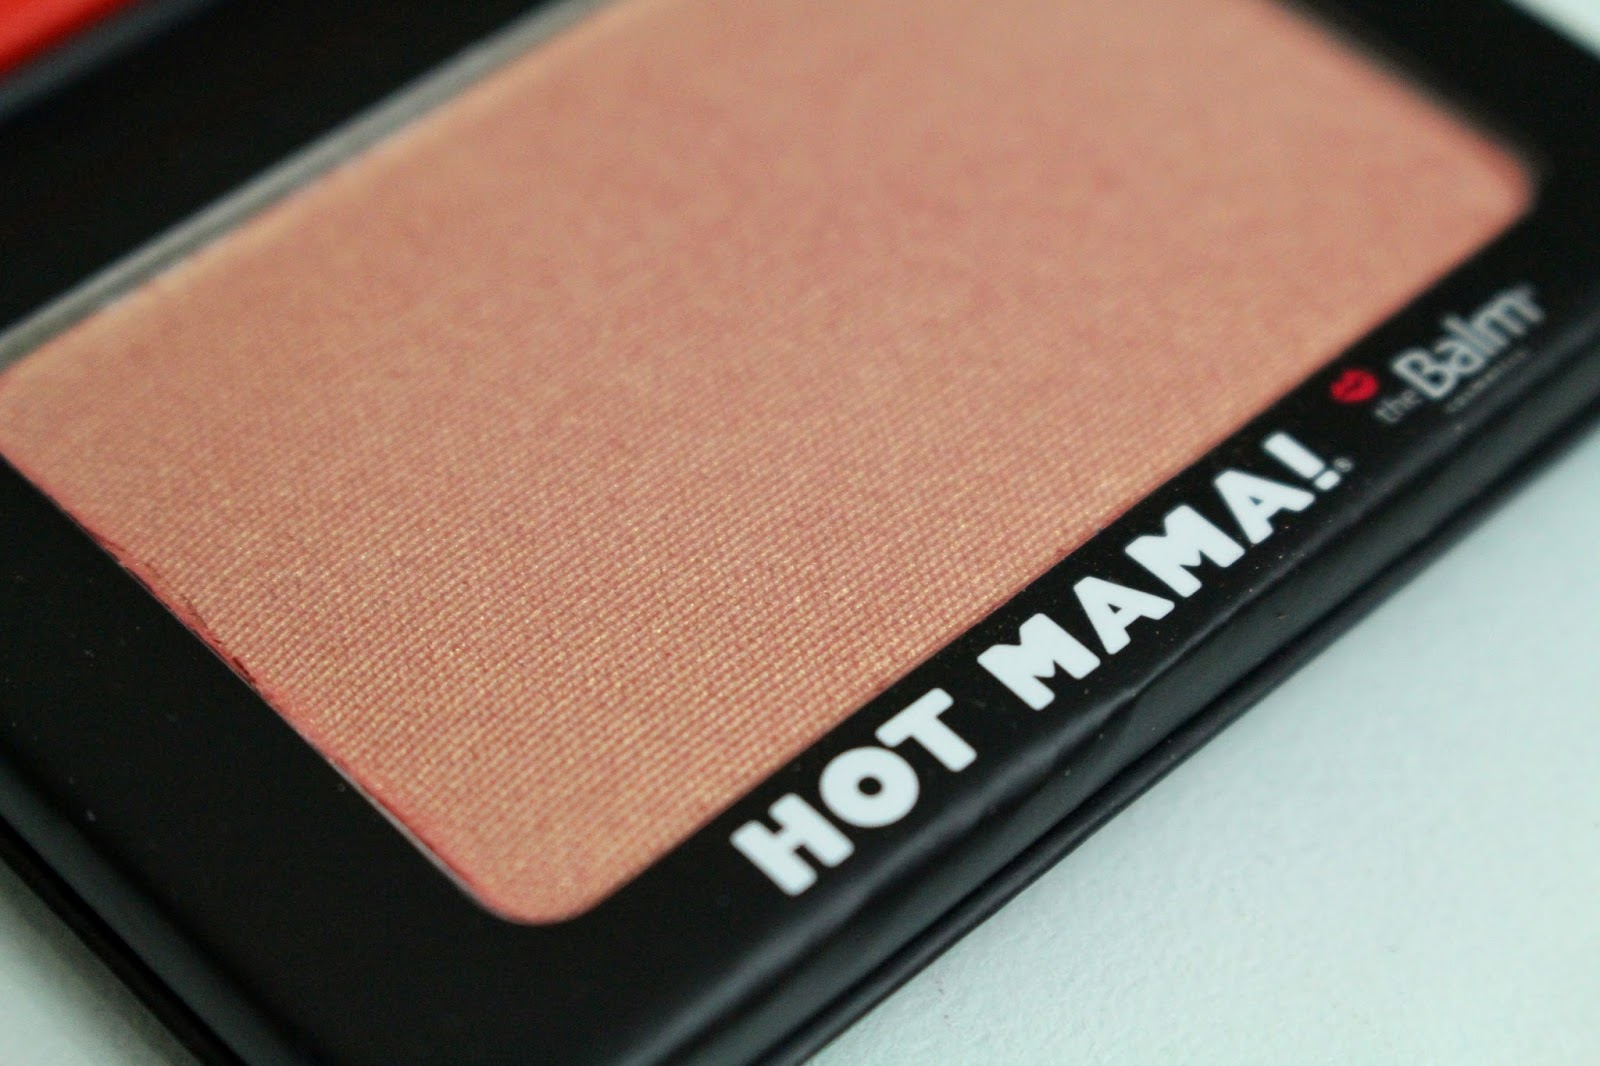 resenha Blush Hot Mama The Balm